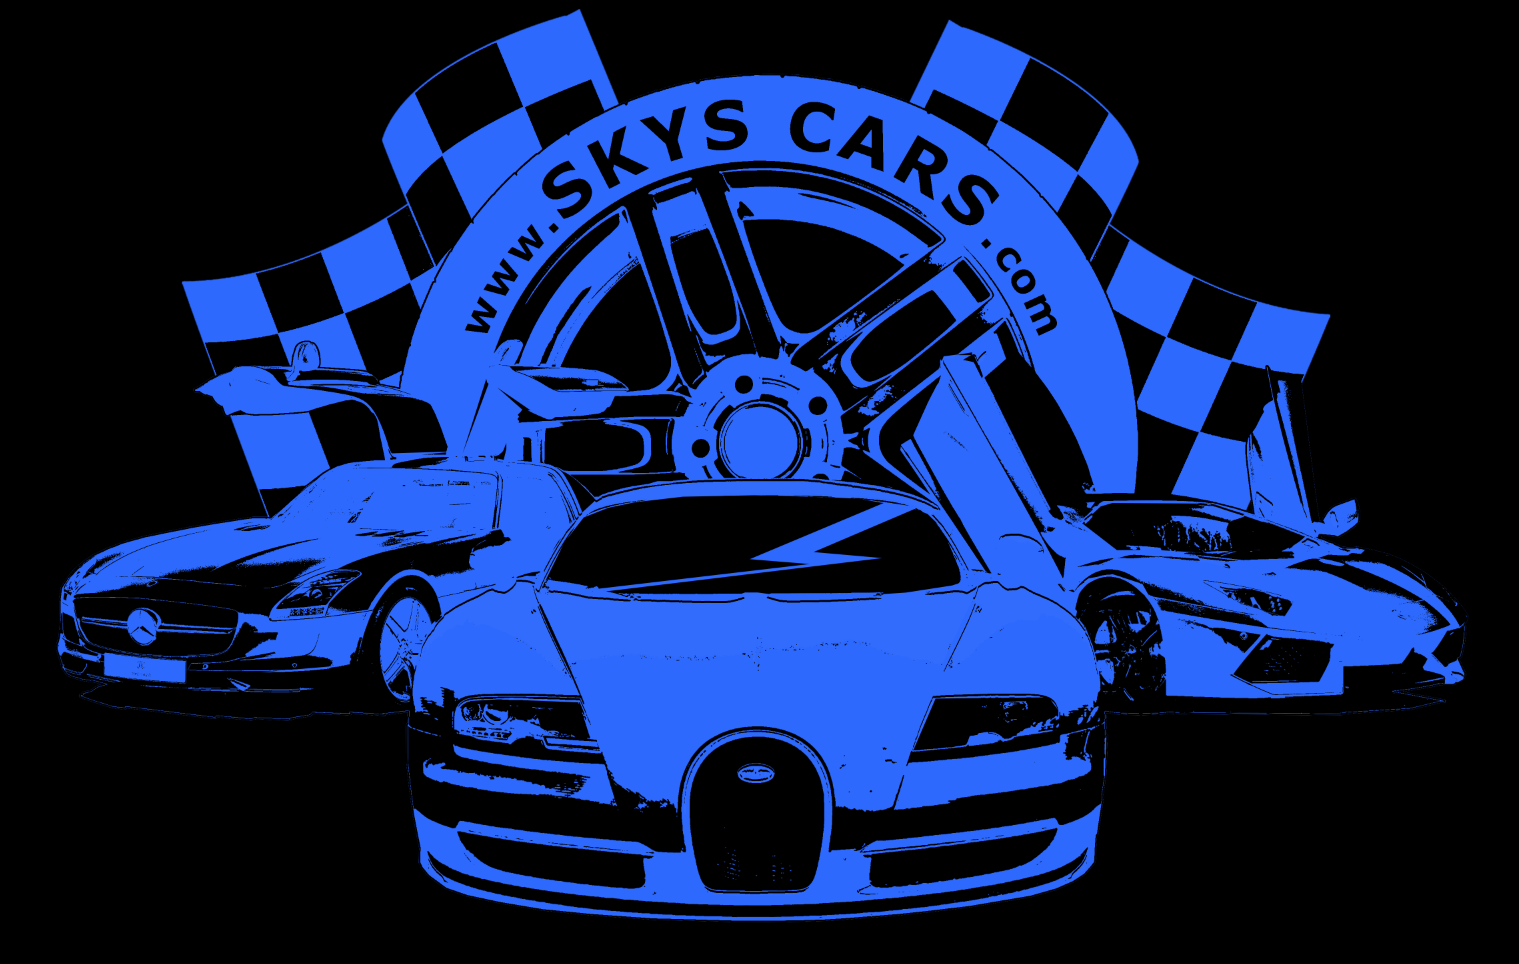 SkysCars_ExoticCar_TShirt.png